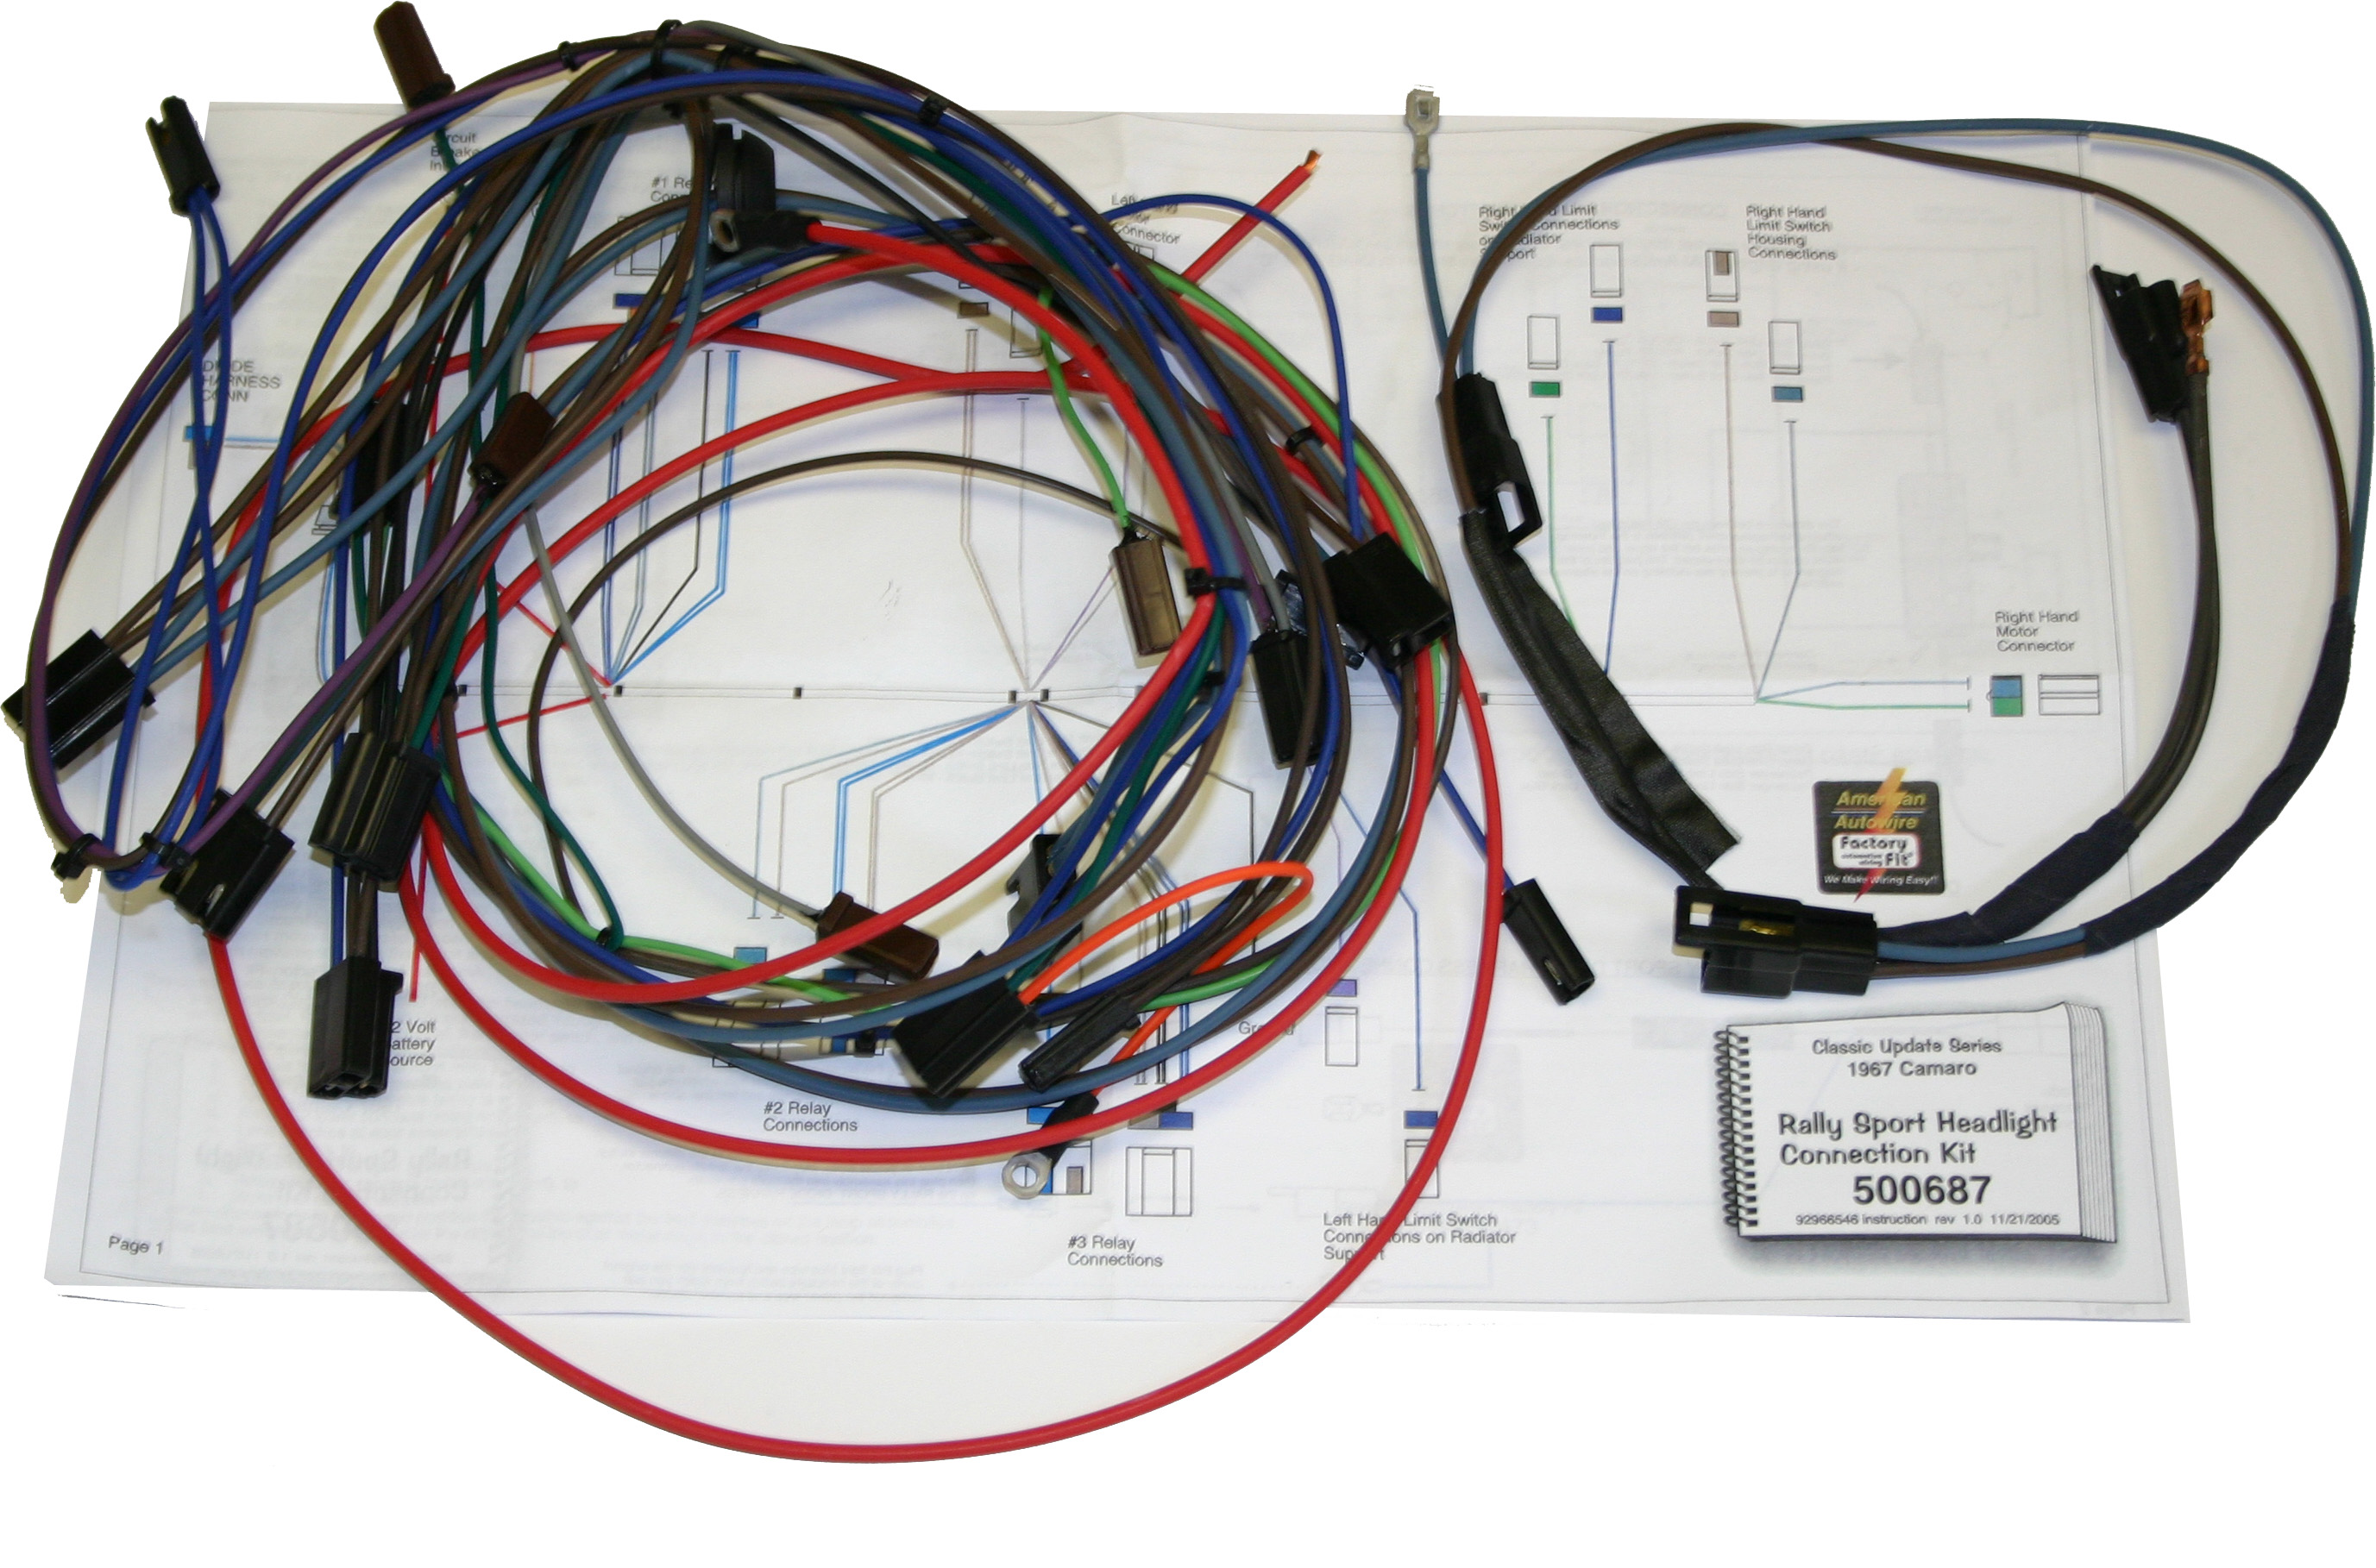 67 68 Camaro Classic Update Wiring Harness 500661 Headlight Relay Switch Kit